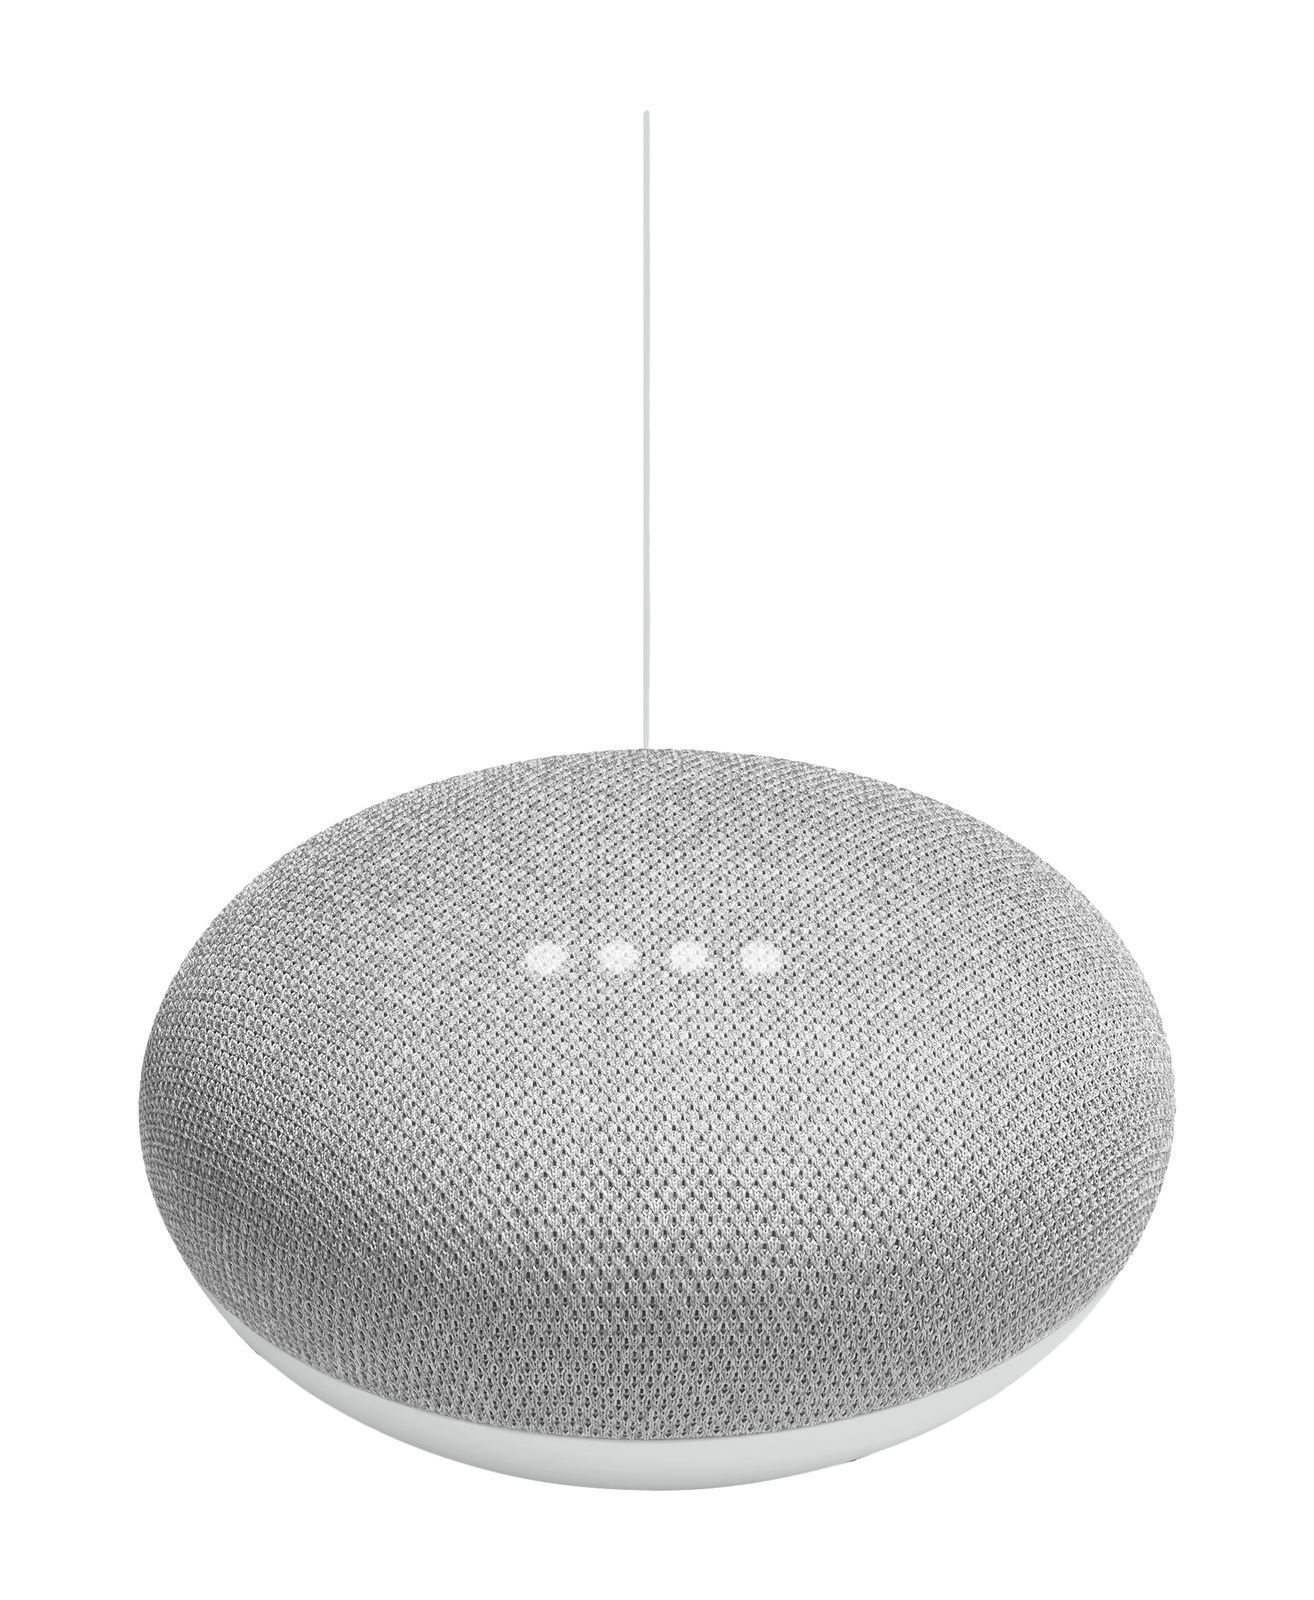 Google Home Mini Voice Activated Smart Assistant Chalk Gray - Worldwide Delivery